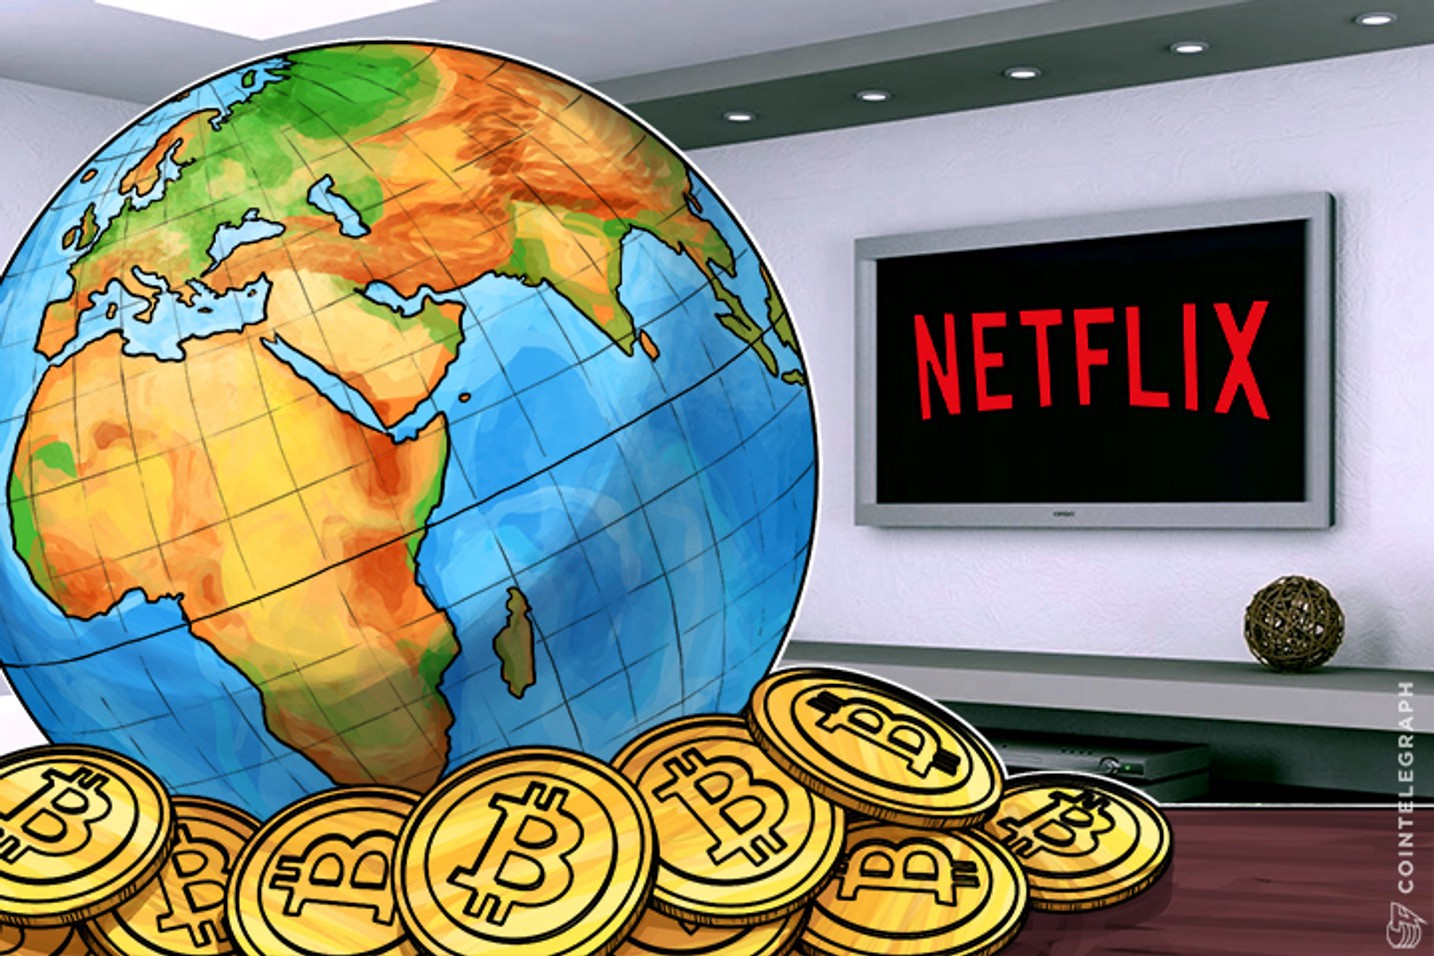 Netflix could be next to invest in Bitcoin, and Amazon accept BTC as  payment | by Lukas Wiesflecker | Mar, 2021 | Medium